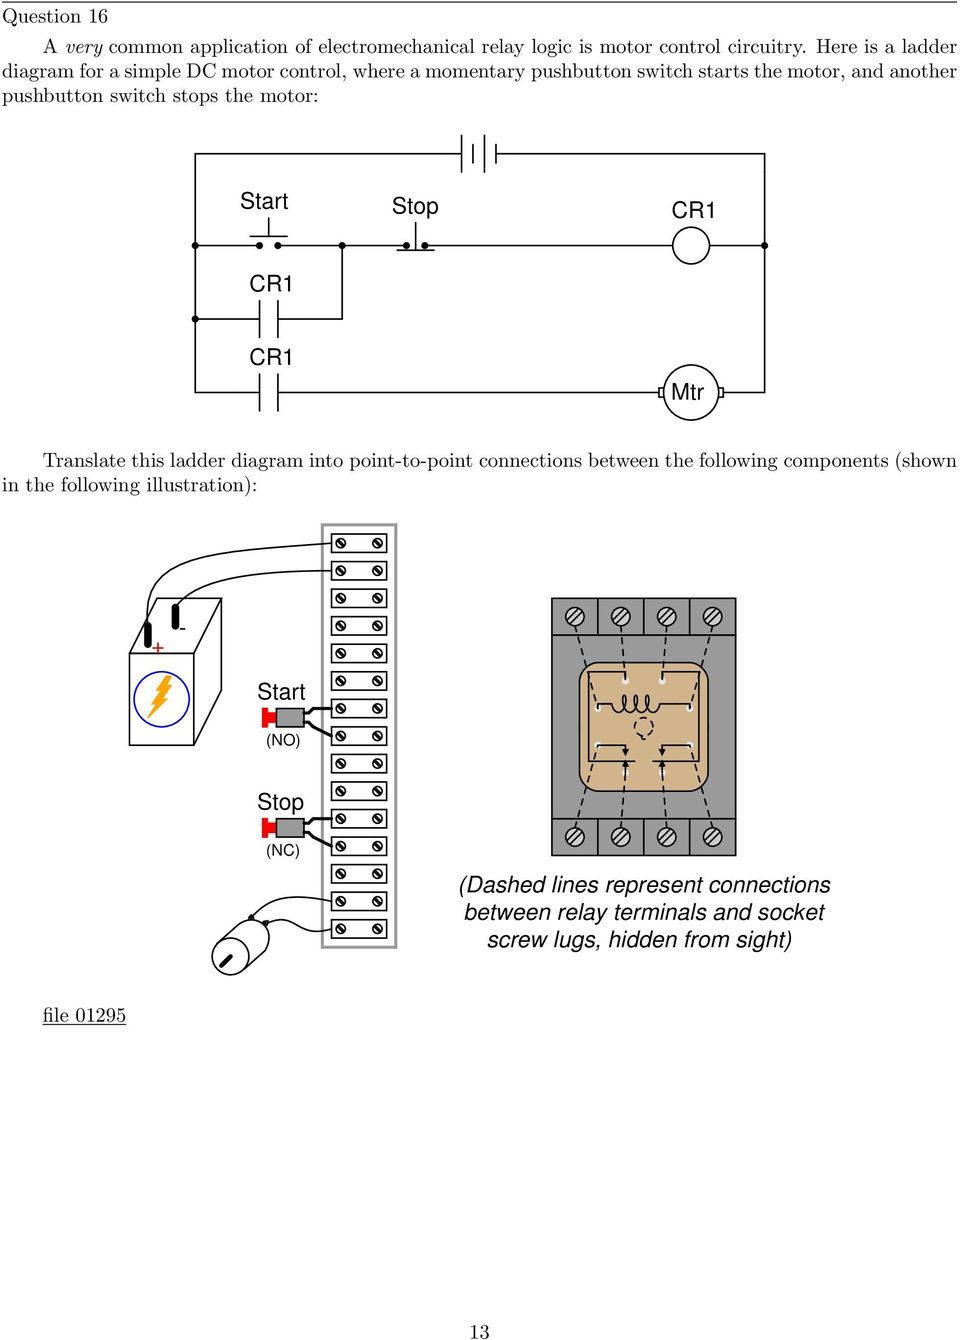 Electromechanical Relay Logic Pdf Diagram Of Xor Gate Switch Stops The Motor Start Stop Mtr Translate This Ladder Into Point To